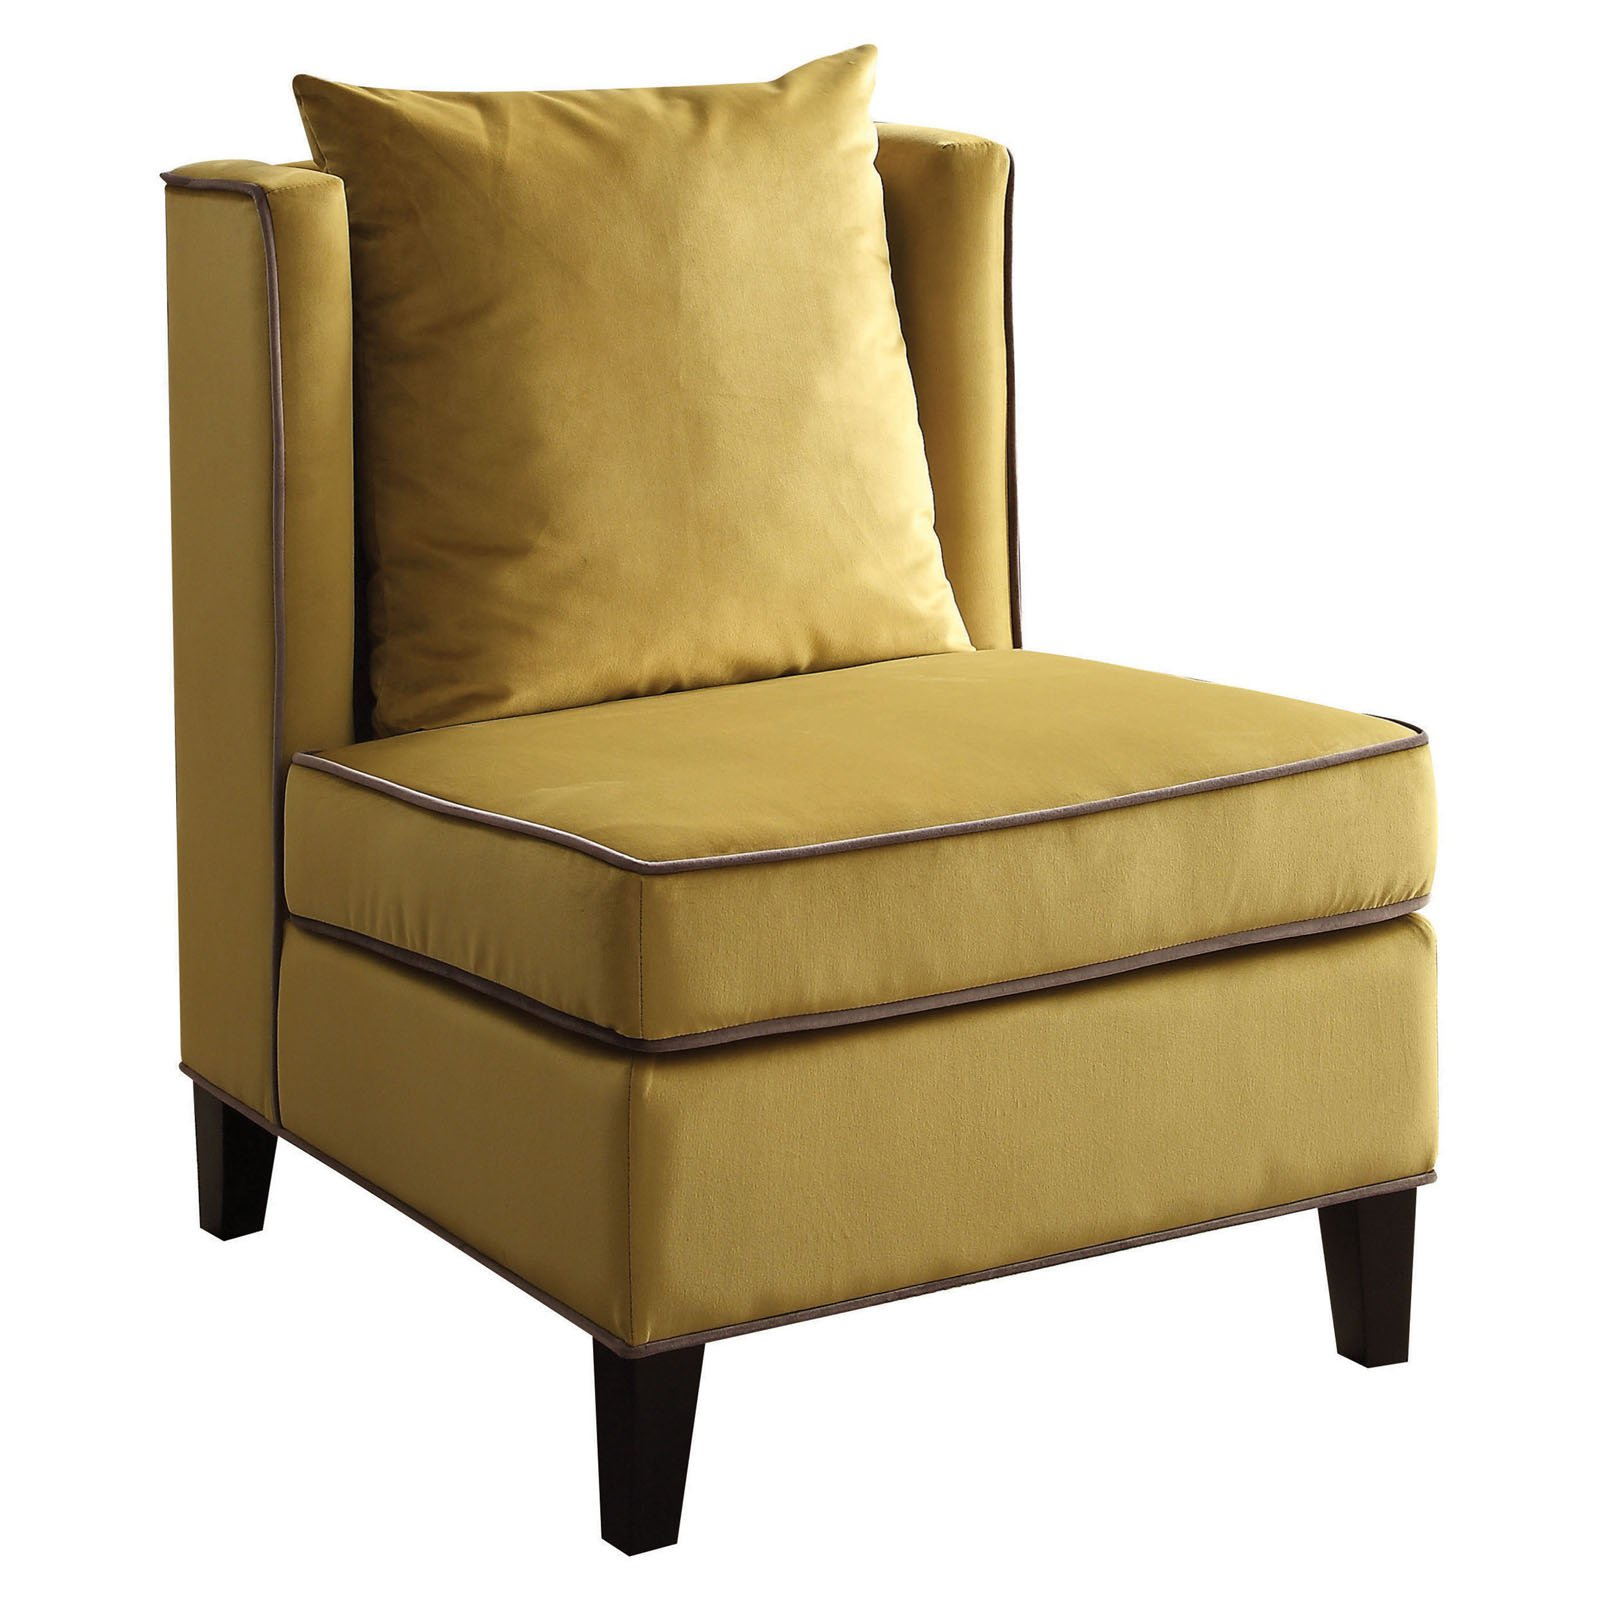 Sofa Mart Accent Chairs: ACME Ozella Accent Chair, Yellow Velvet